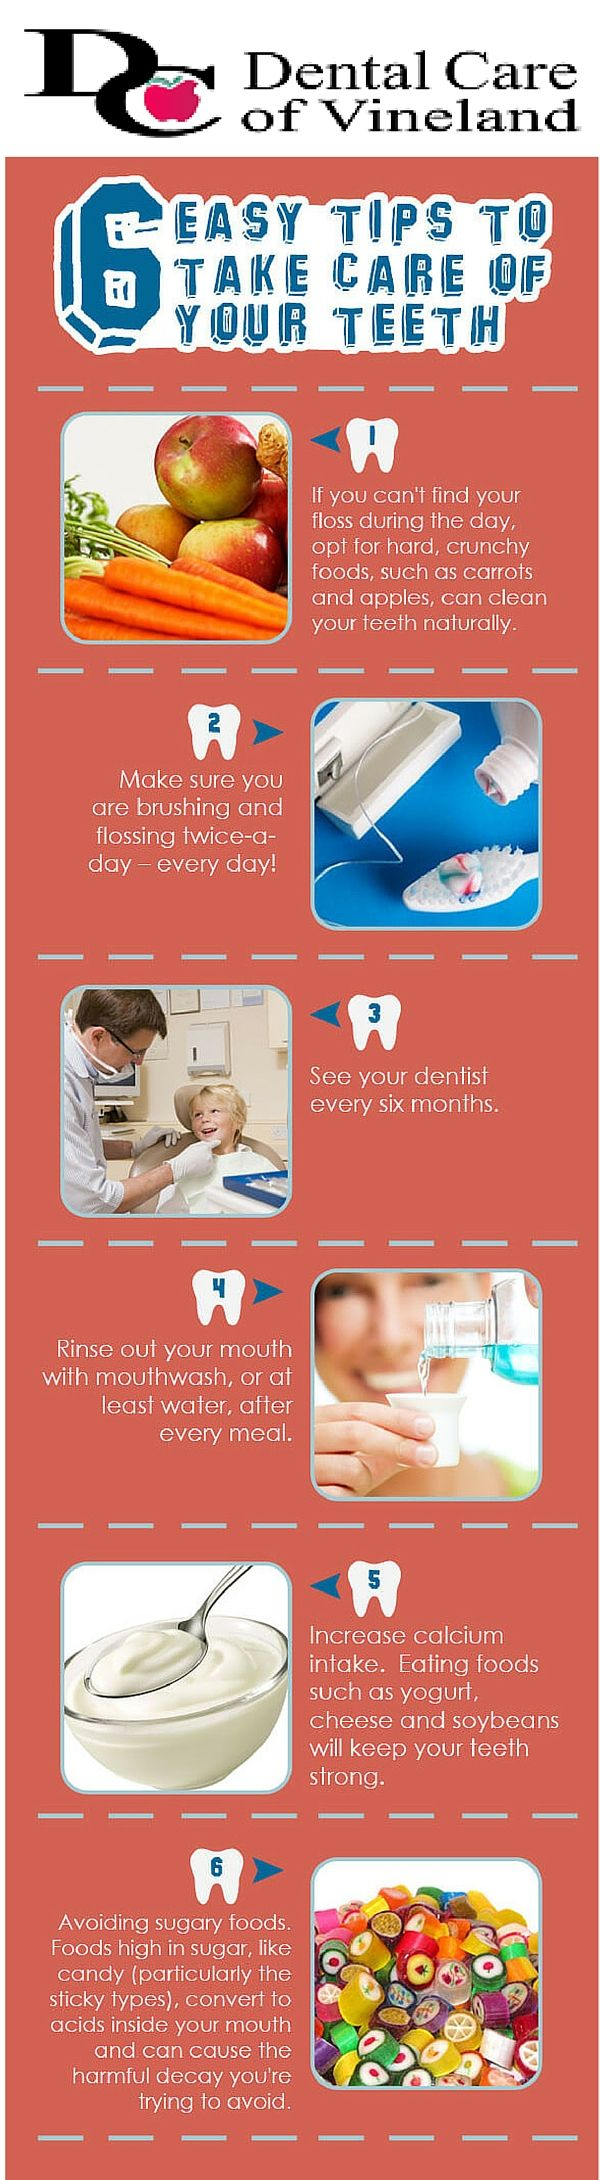 Camden Dental Care